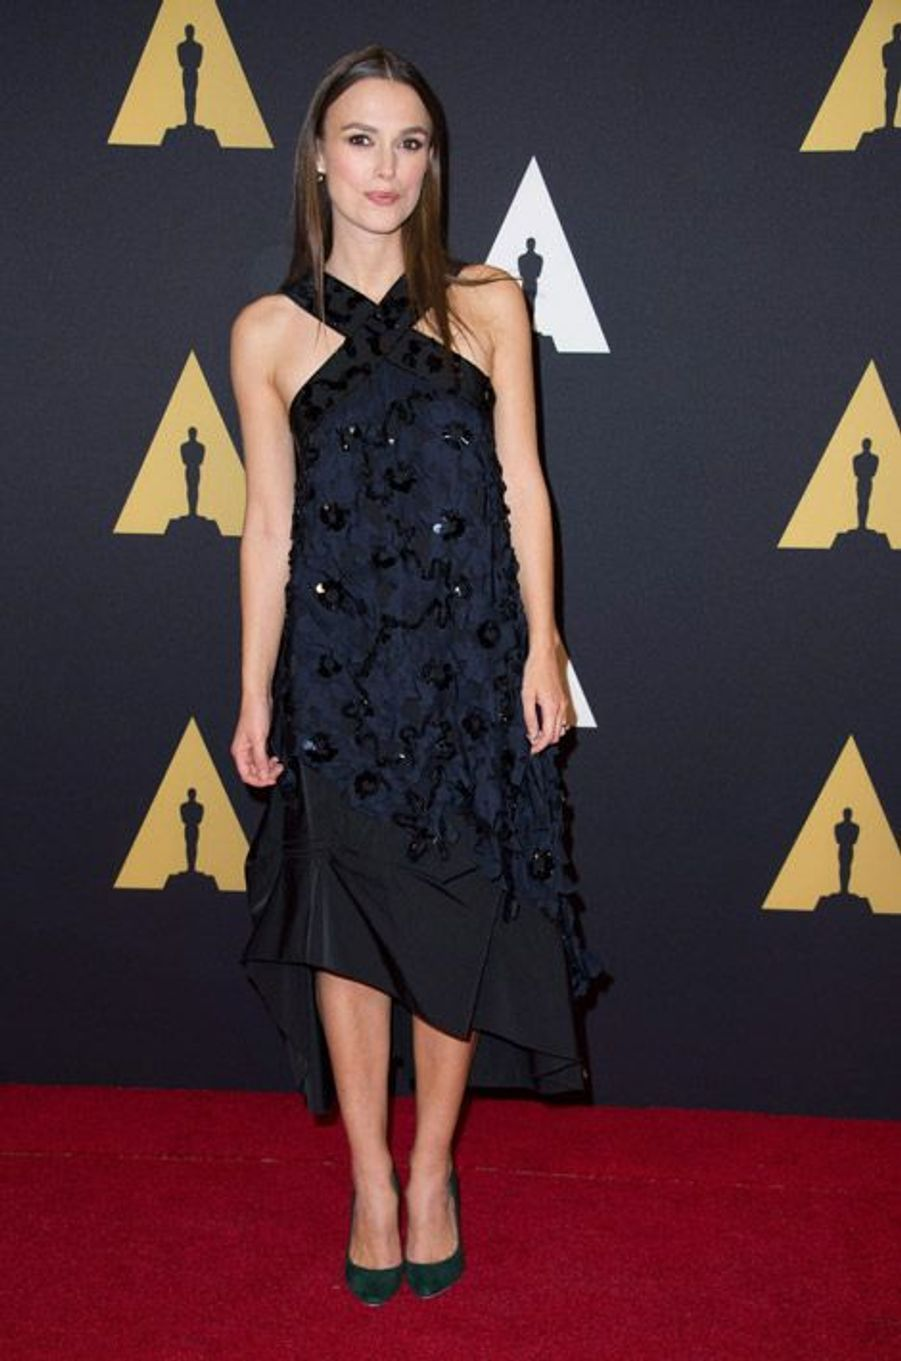 L'actrice Keira Knightley en Nina Ricci lors du 6eme gala Annual Governors Awards à Hollywood